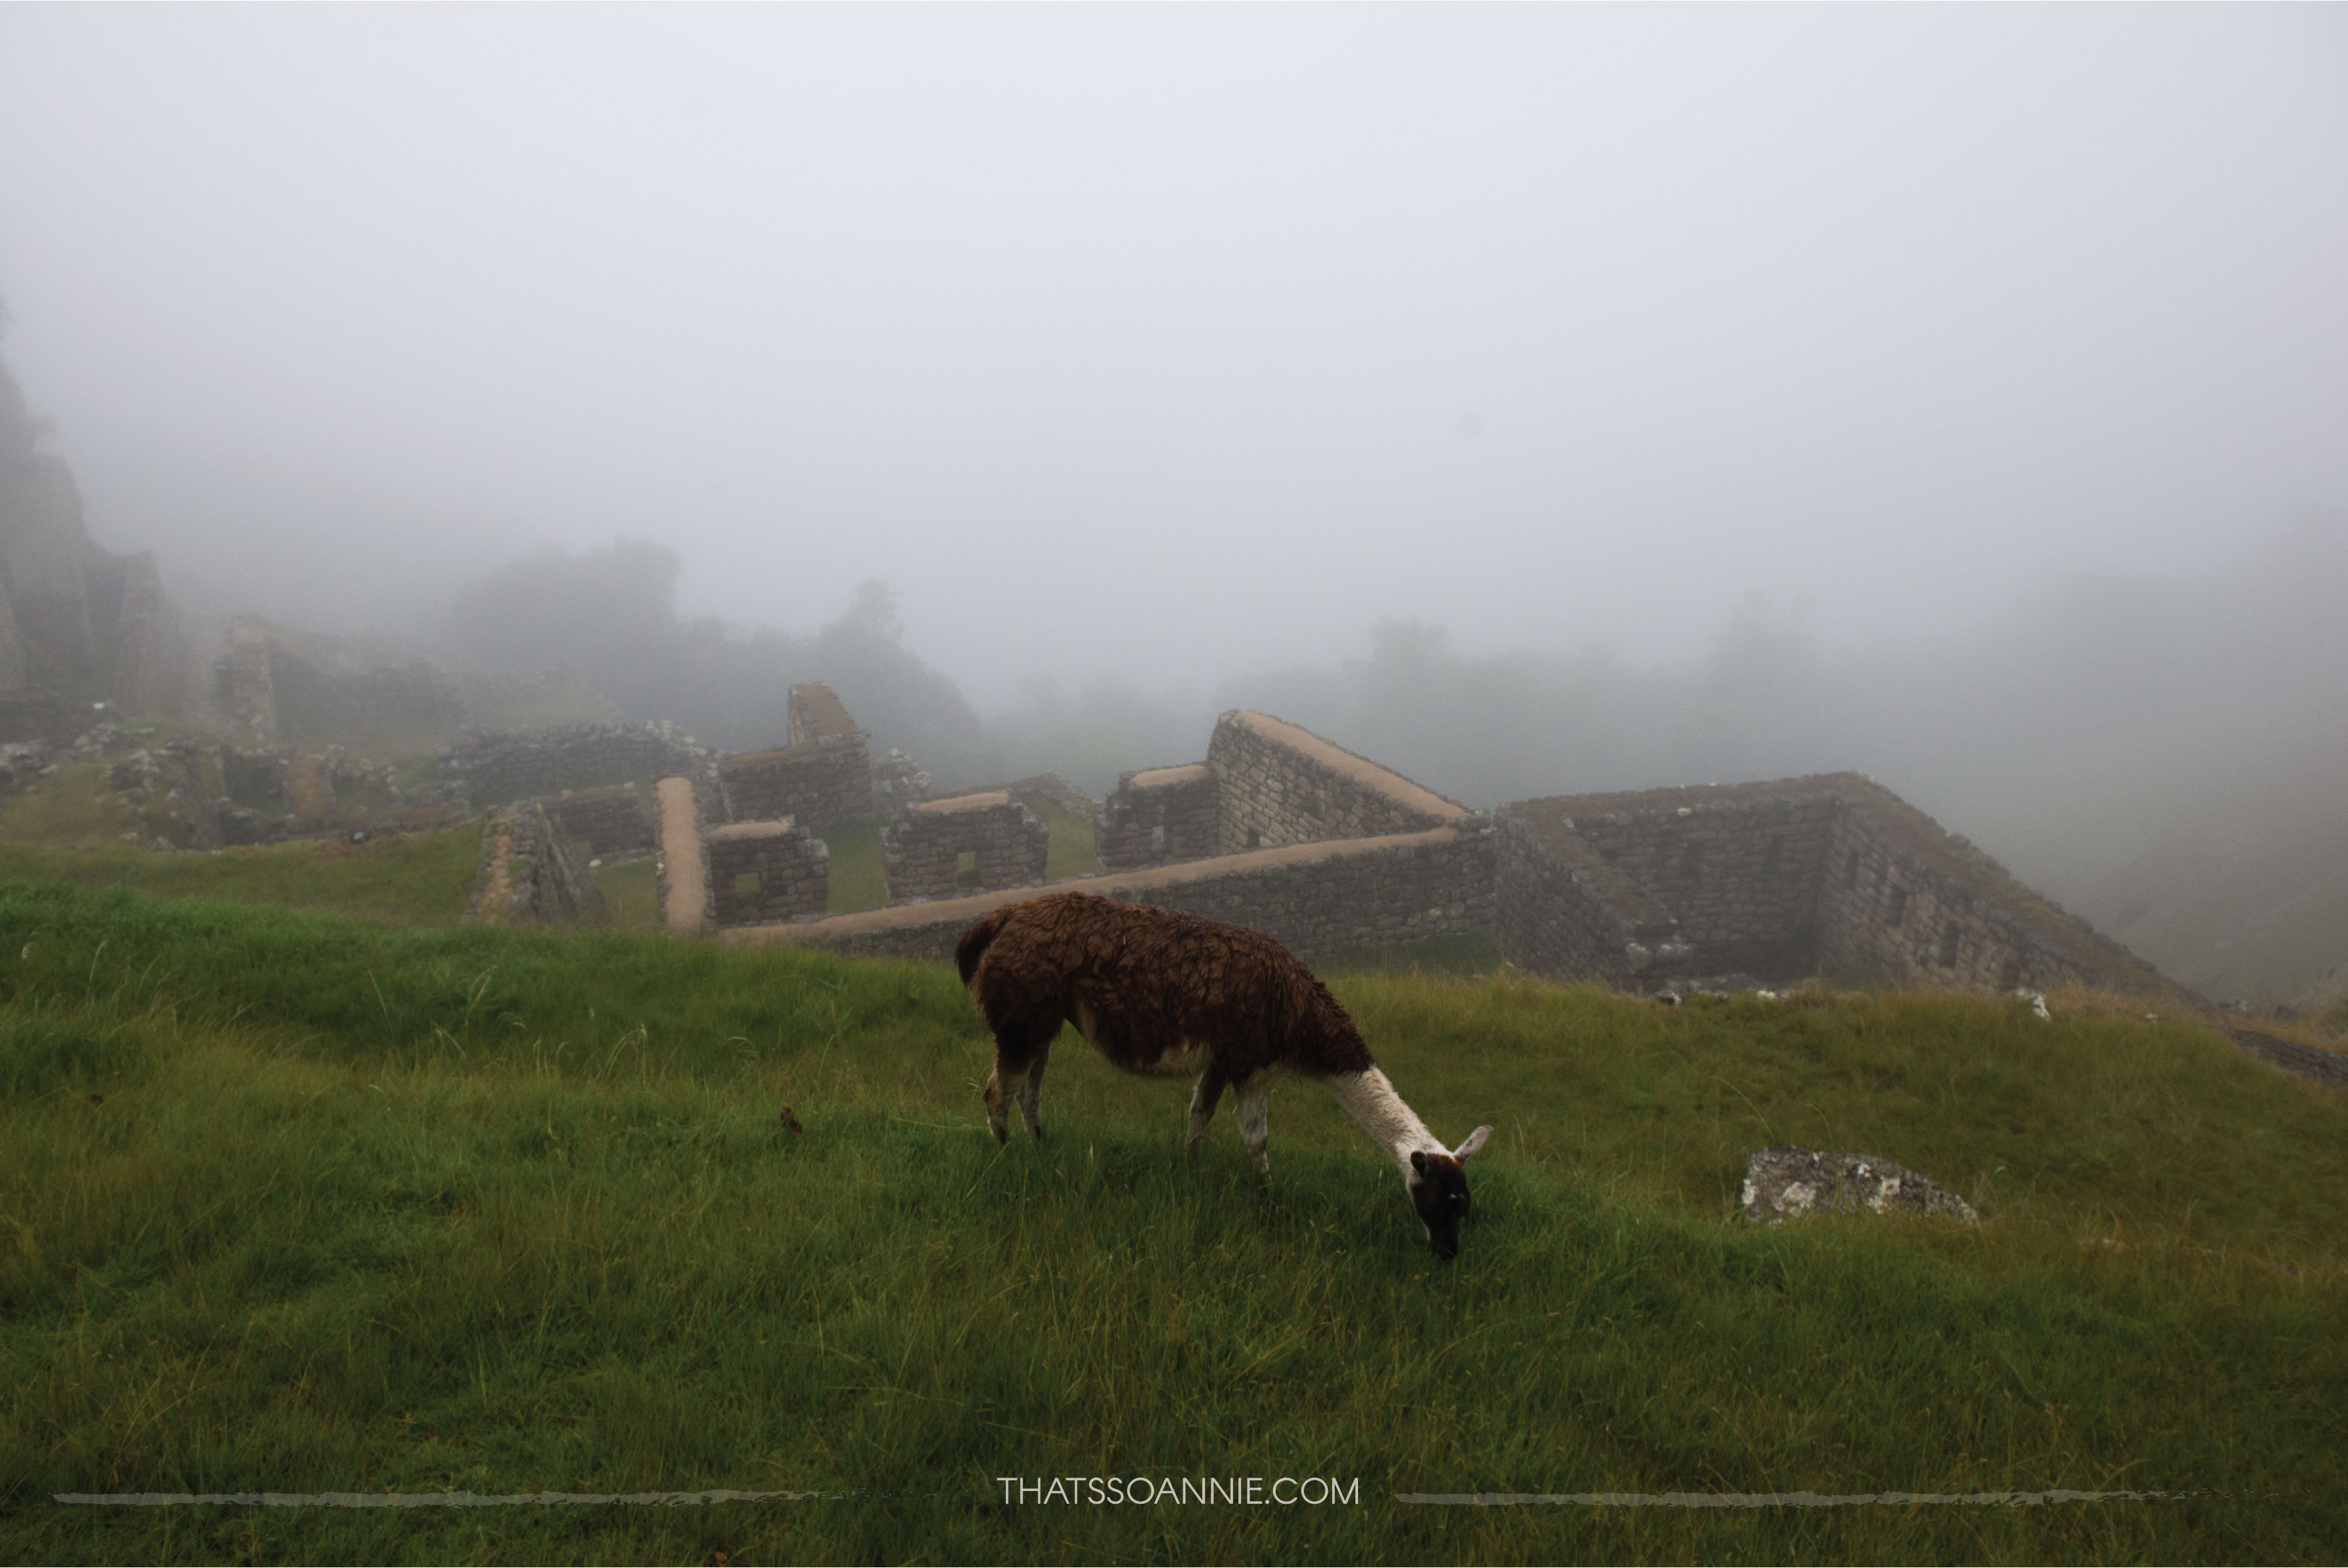 Foggy morning at Machu Picchu